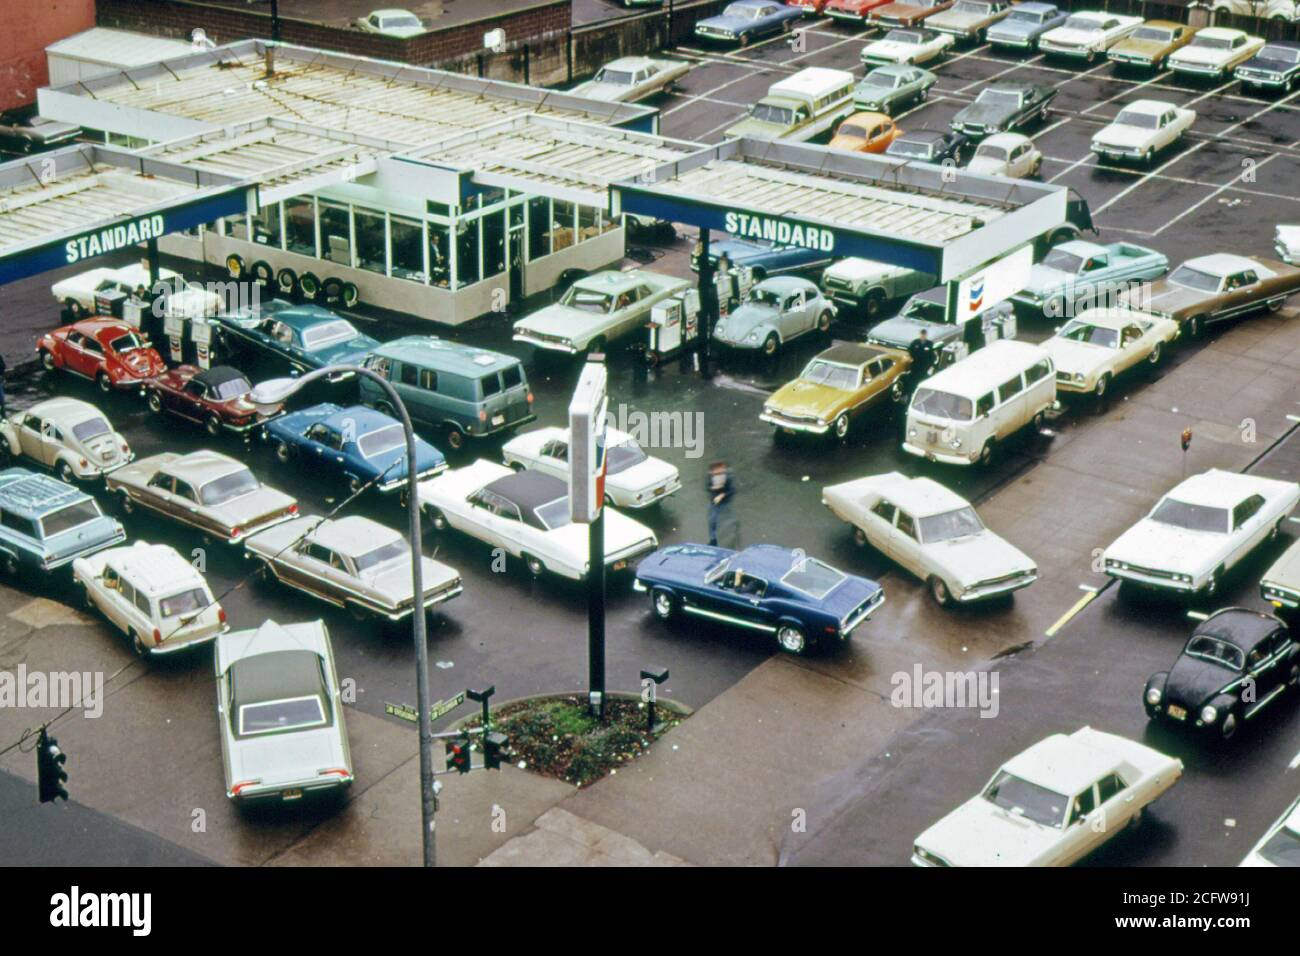 1970s Gas Shortage High Resolution Stock Photography and Images - Alamy